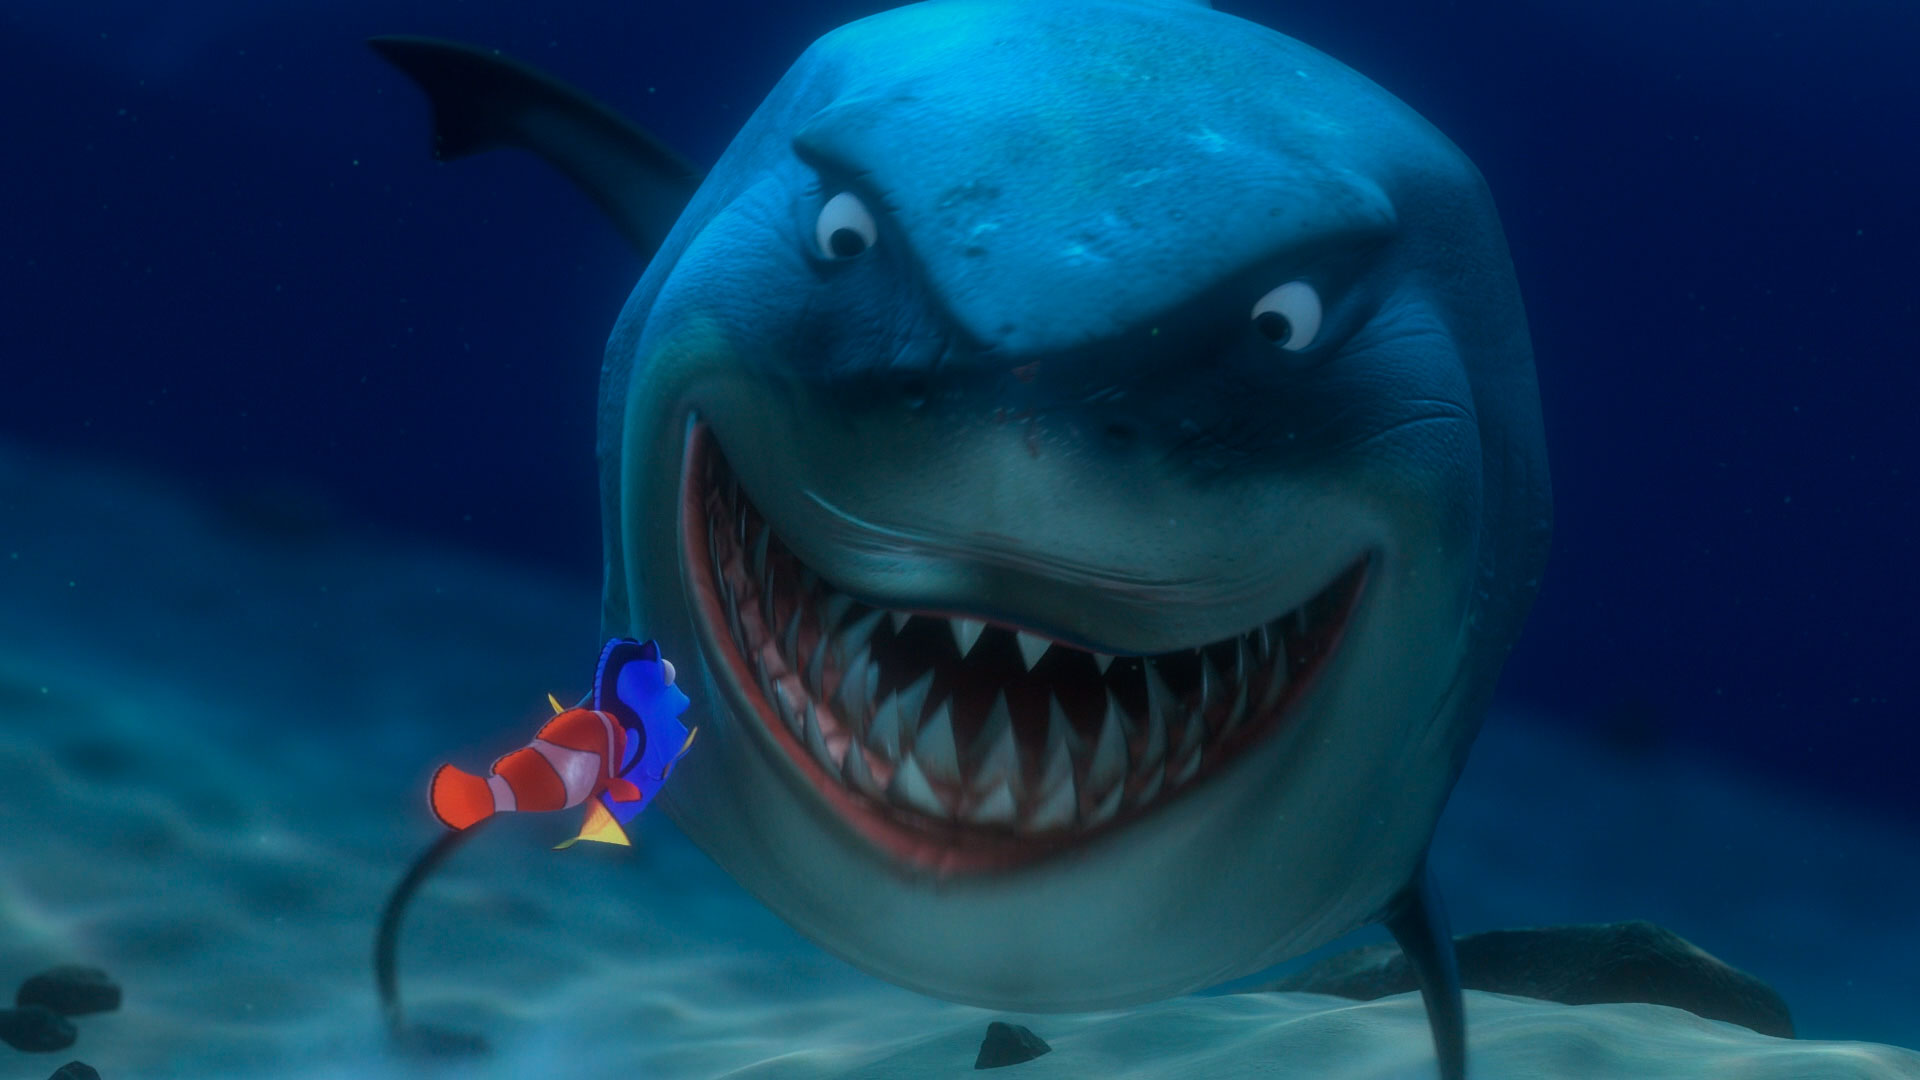 finding nemo 2 essay Finding nemo is an american cgi-animated film series and media franchise produced by pixar animation studios and distributed by walt disney studios that began with the 2003 animated comedy-drama adventure film of the same name, finding nemo and followed by its 2016 sequel, finding dory.